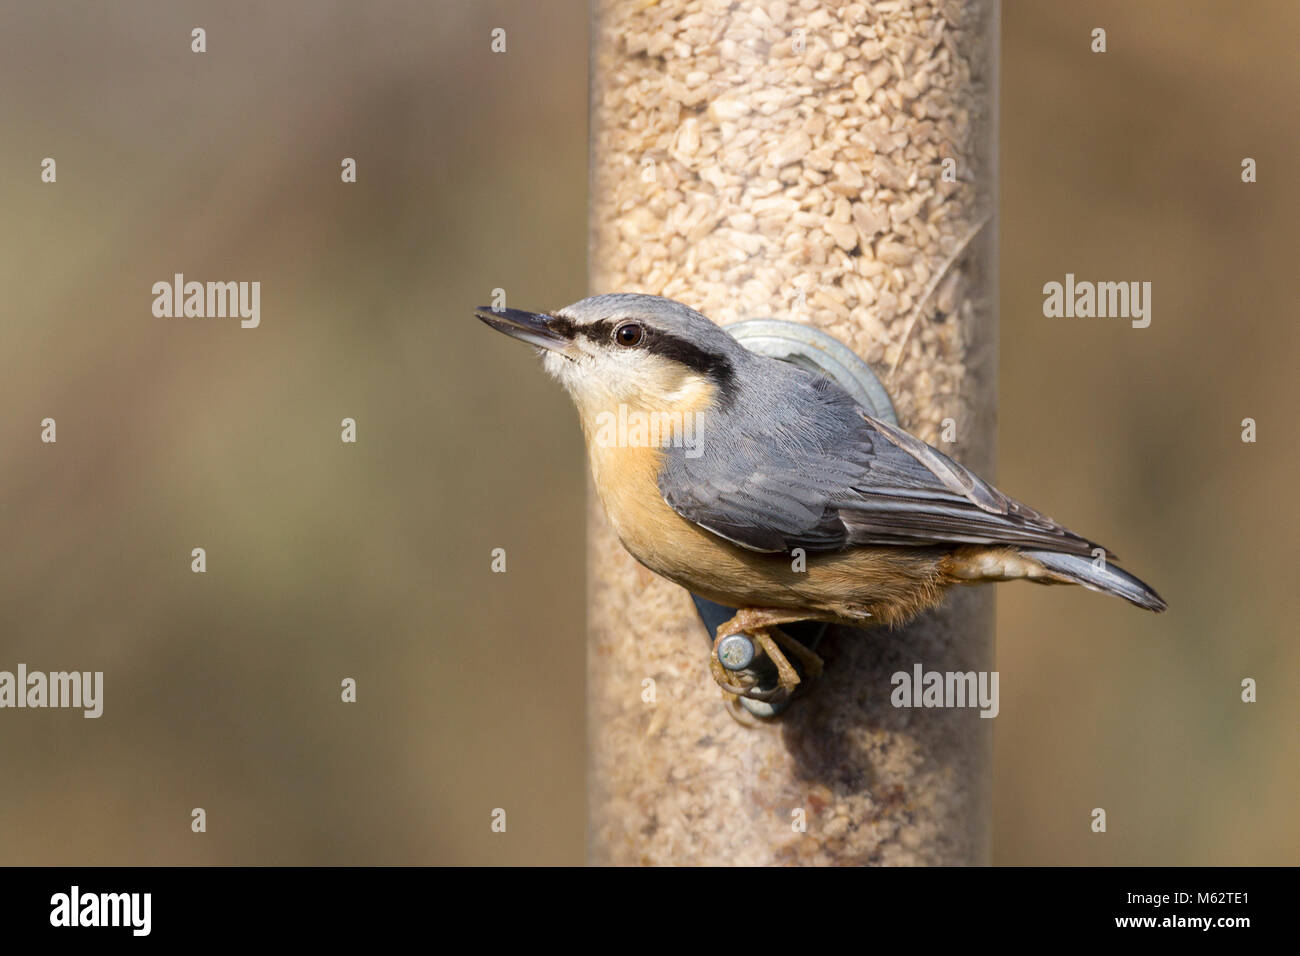 Nuthatch (Sitta europaea) visiting feeding station at bird hide in Warnham wildlife reserve Horsham UK. Winter Febuary - Stock Image